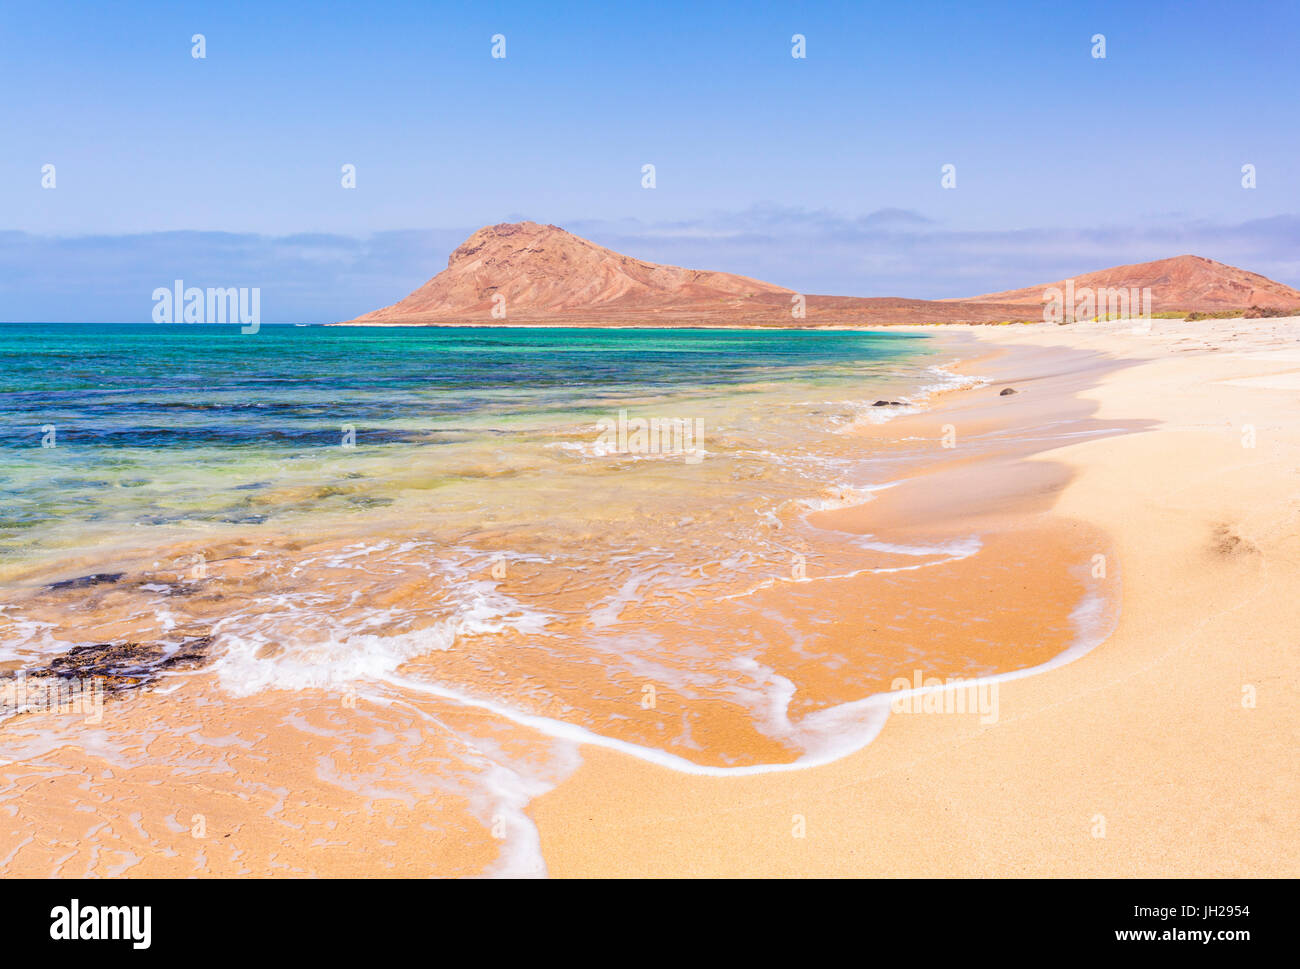 Plage de sable et la baie vide près de Monte Leao montagne (mountain Lion Endormi), l'île de Sal, Photo Stock